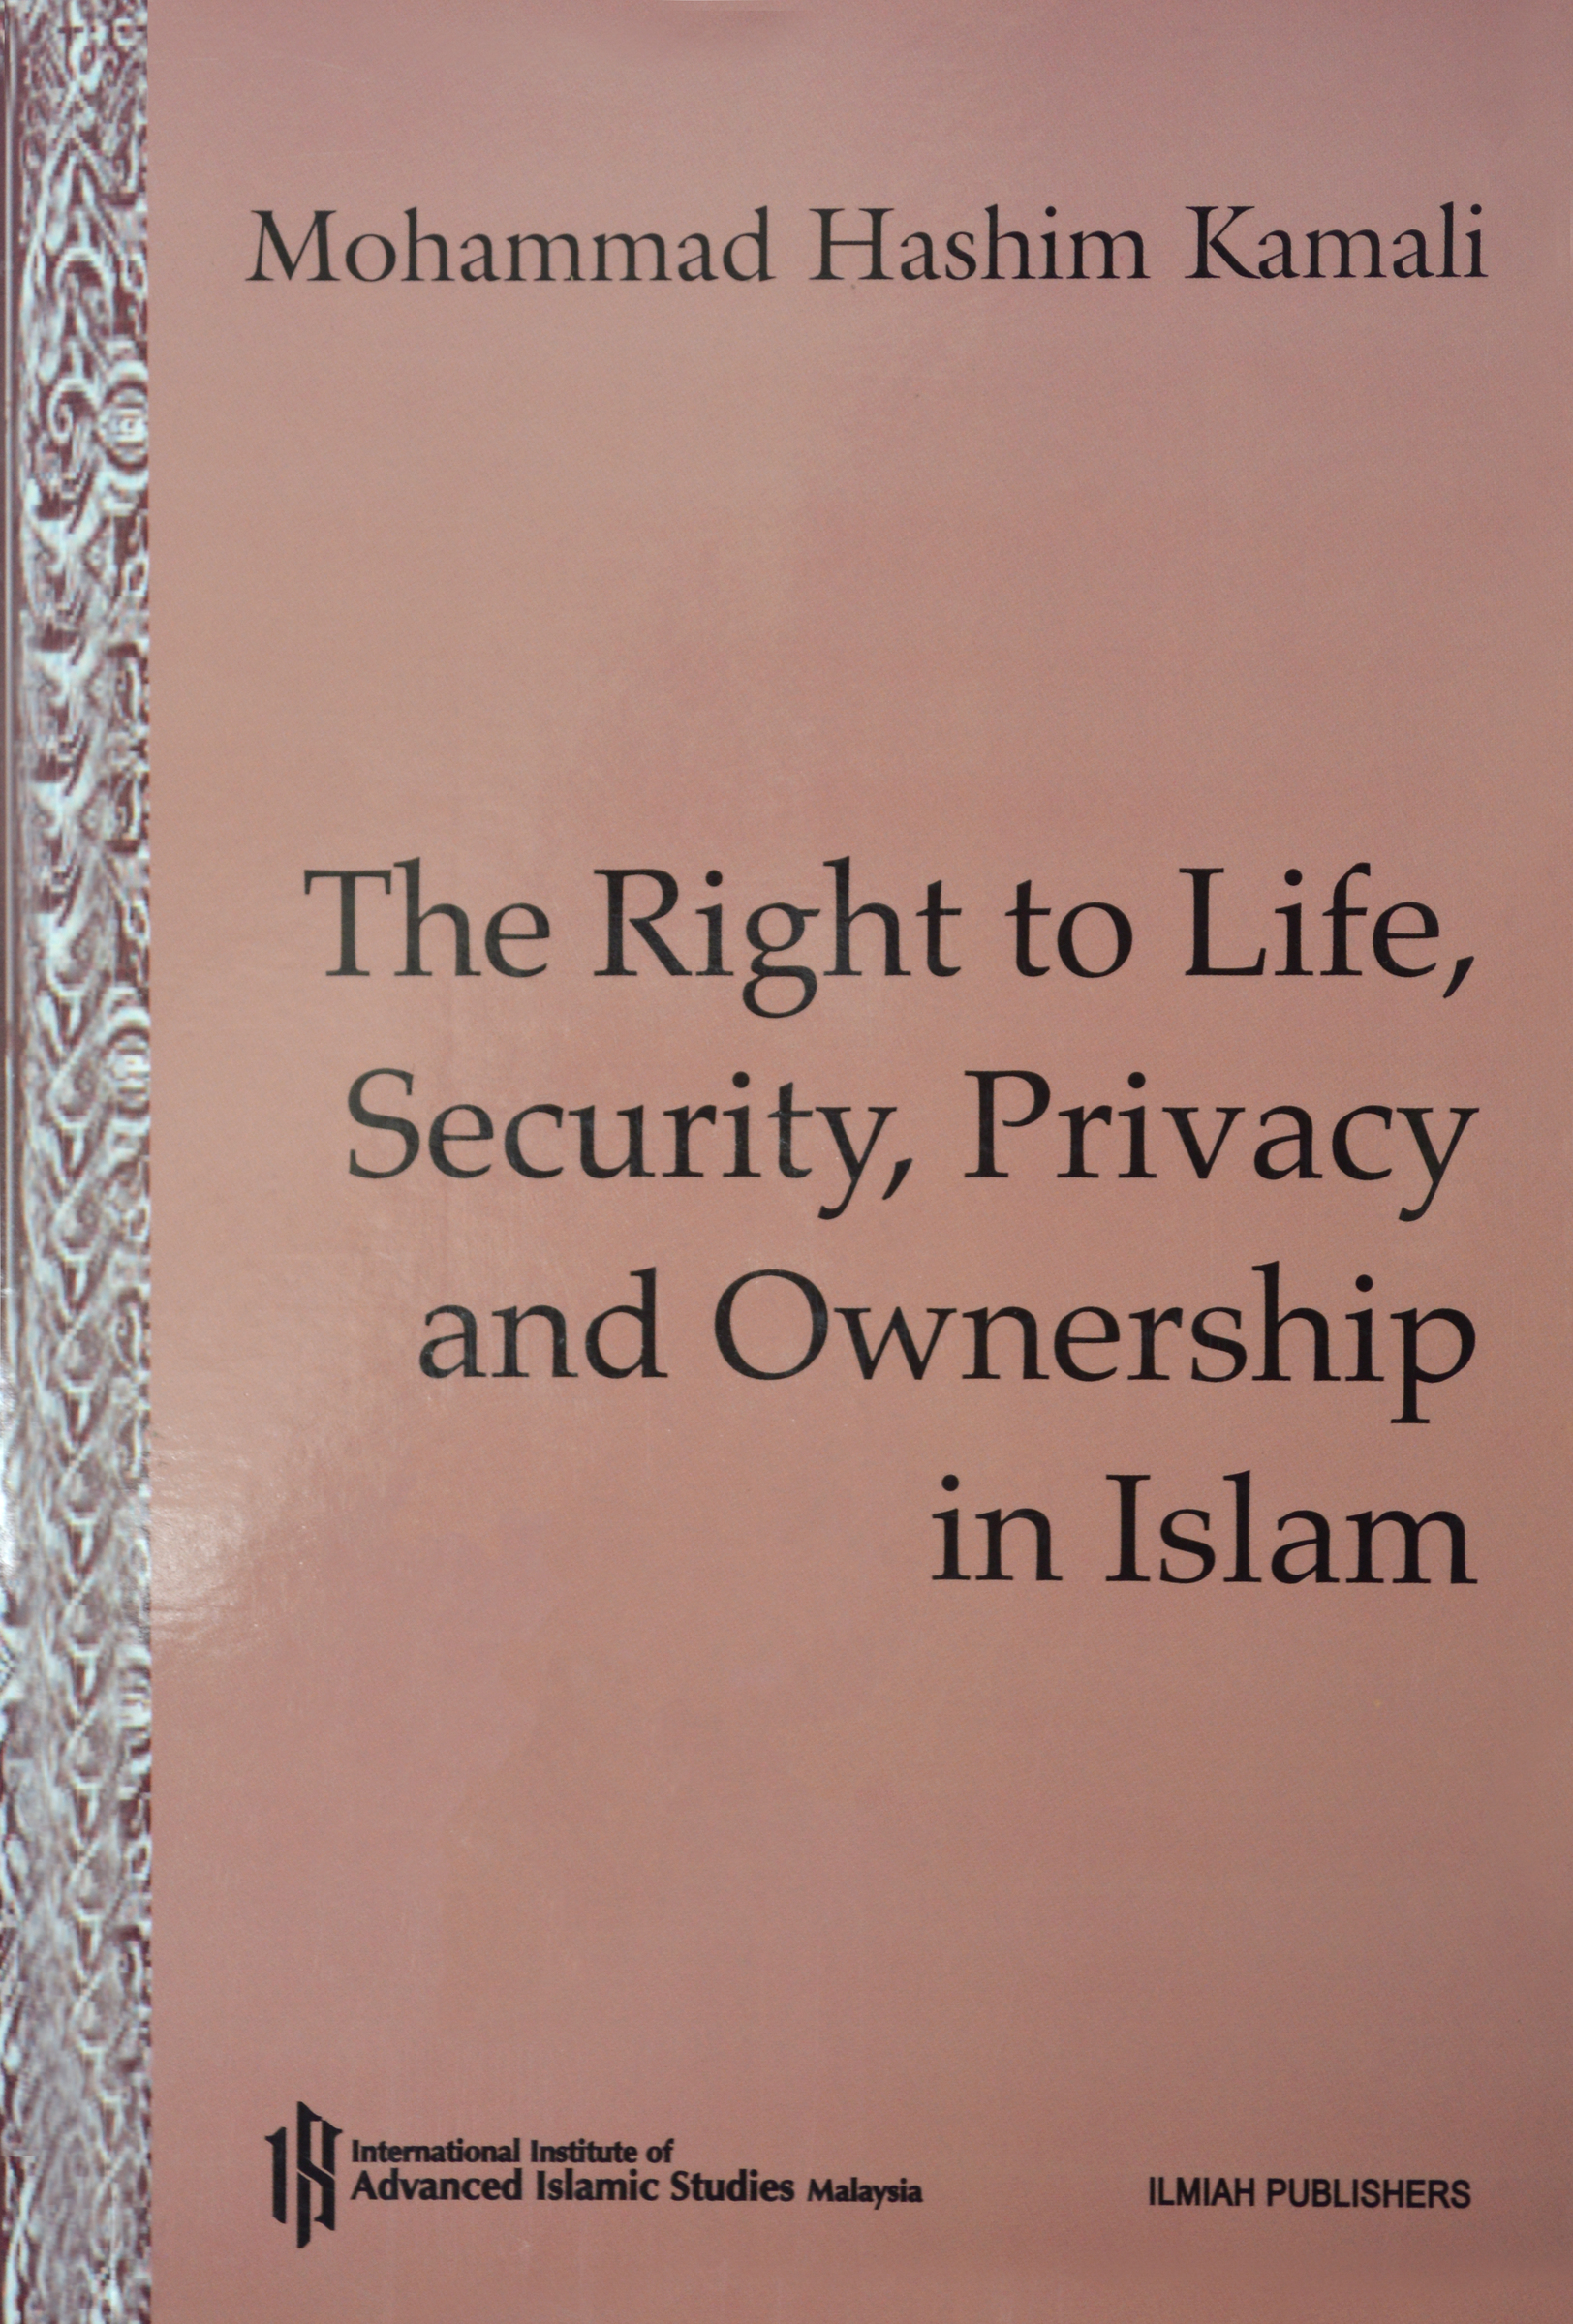 The Right to Life, Security, Privacy.jpg